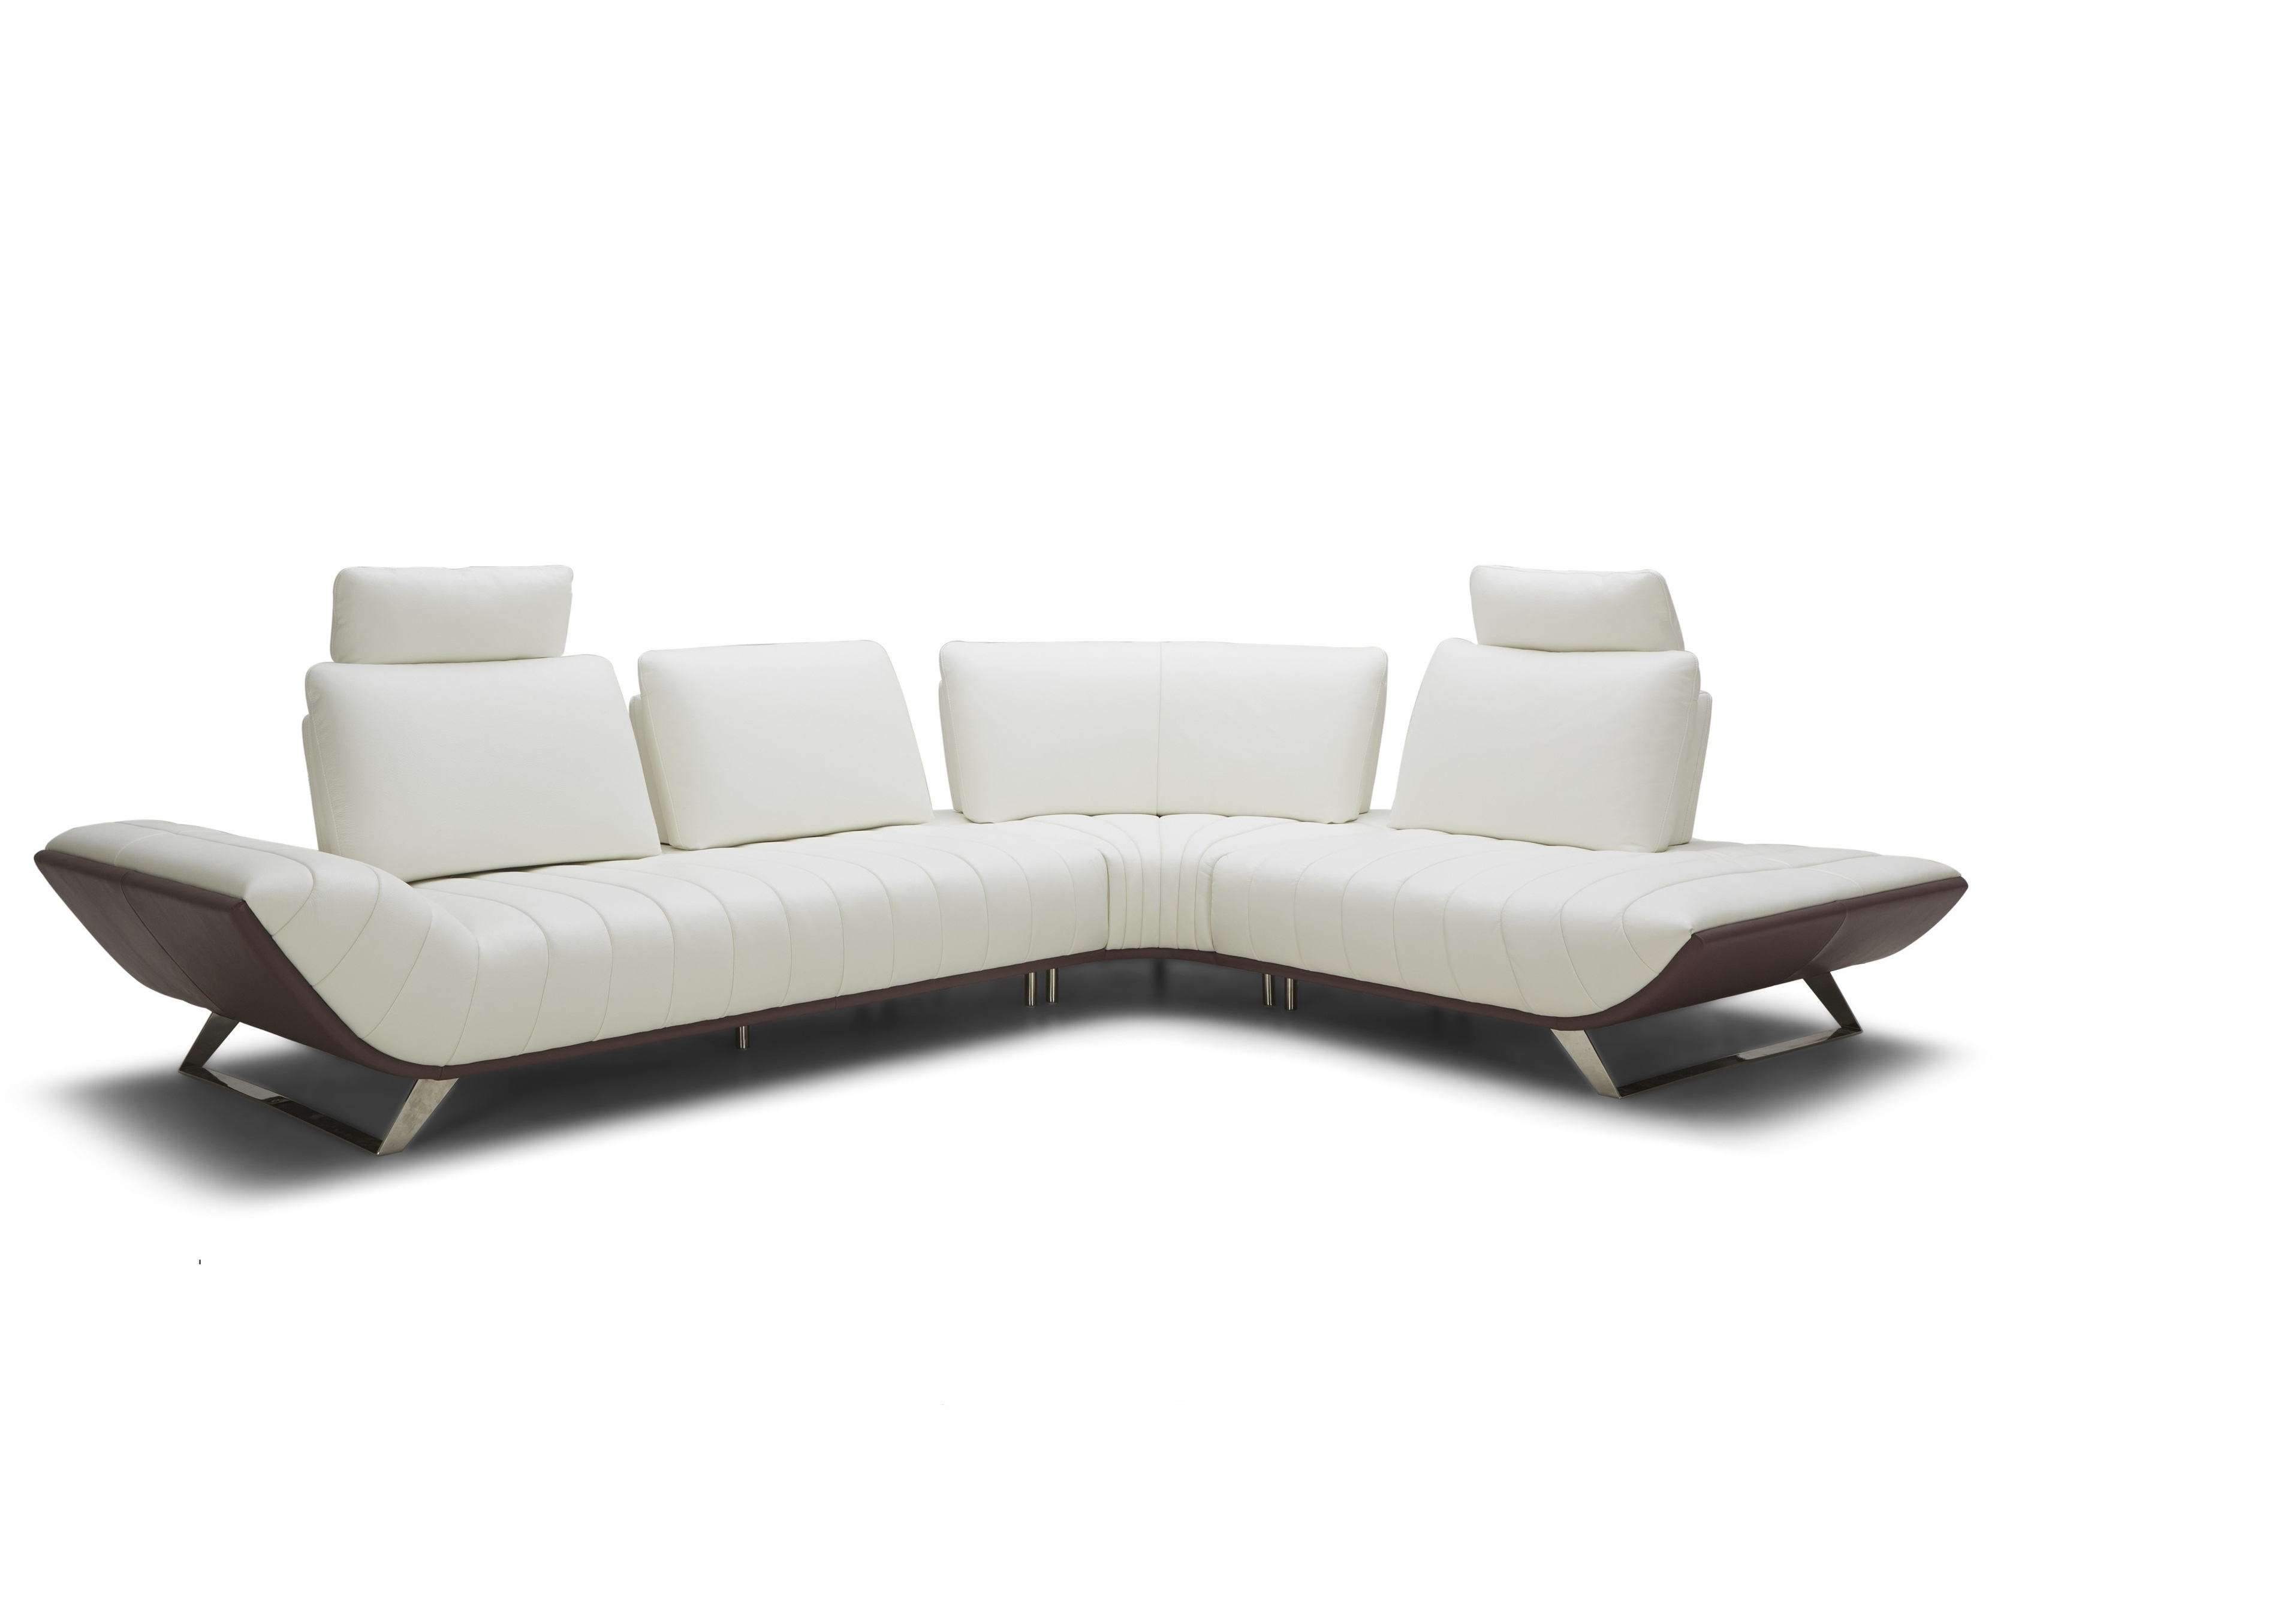 Wedge L Shaped Leather Sofa In White Not Just Brown ~ White Leather L Shaped Sofa